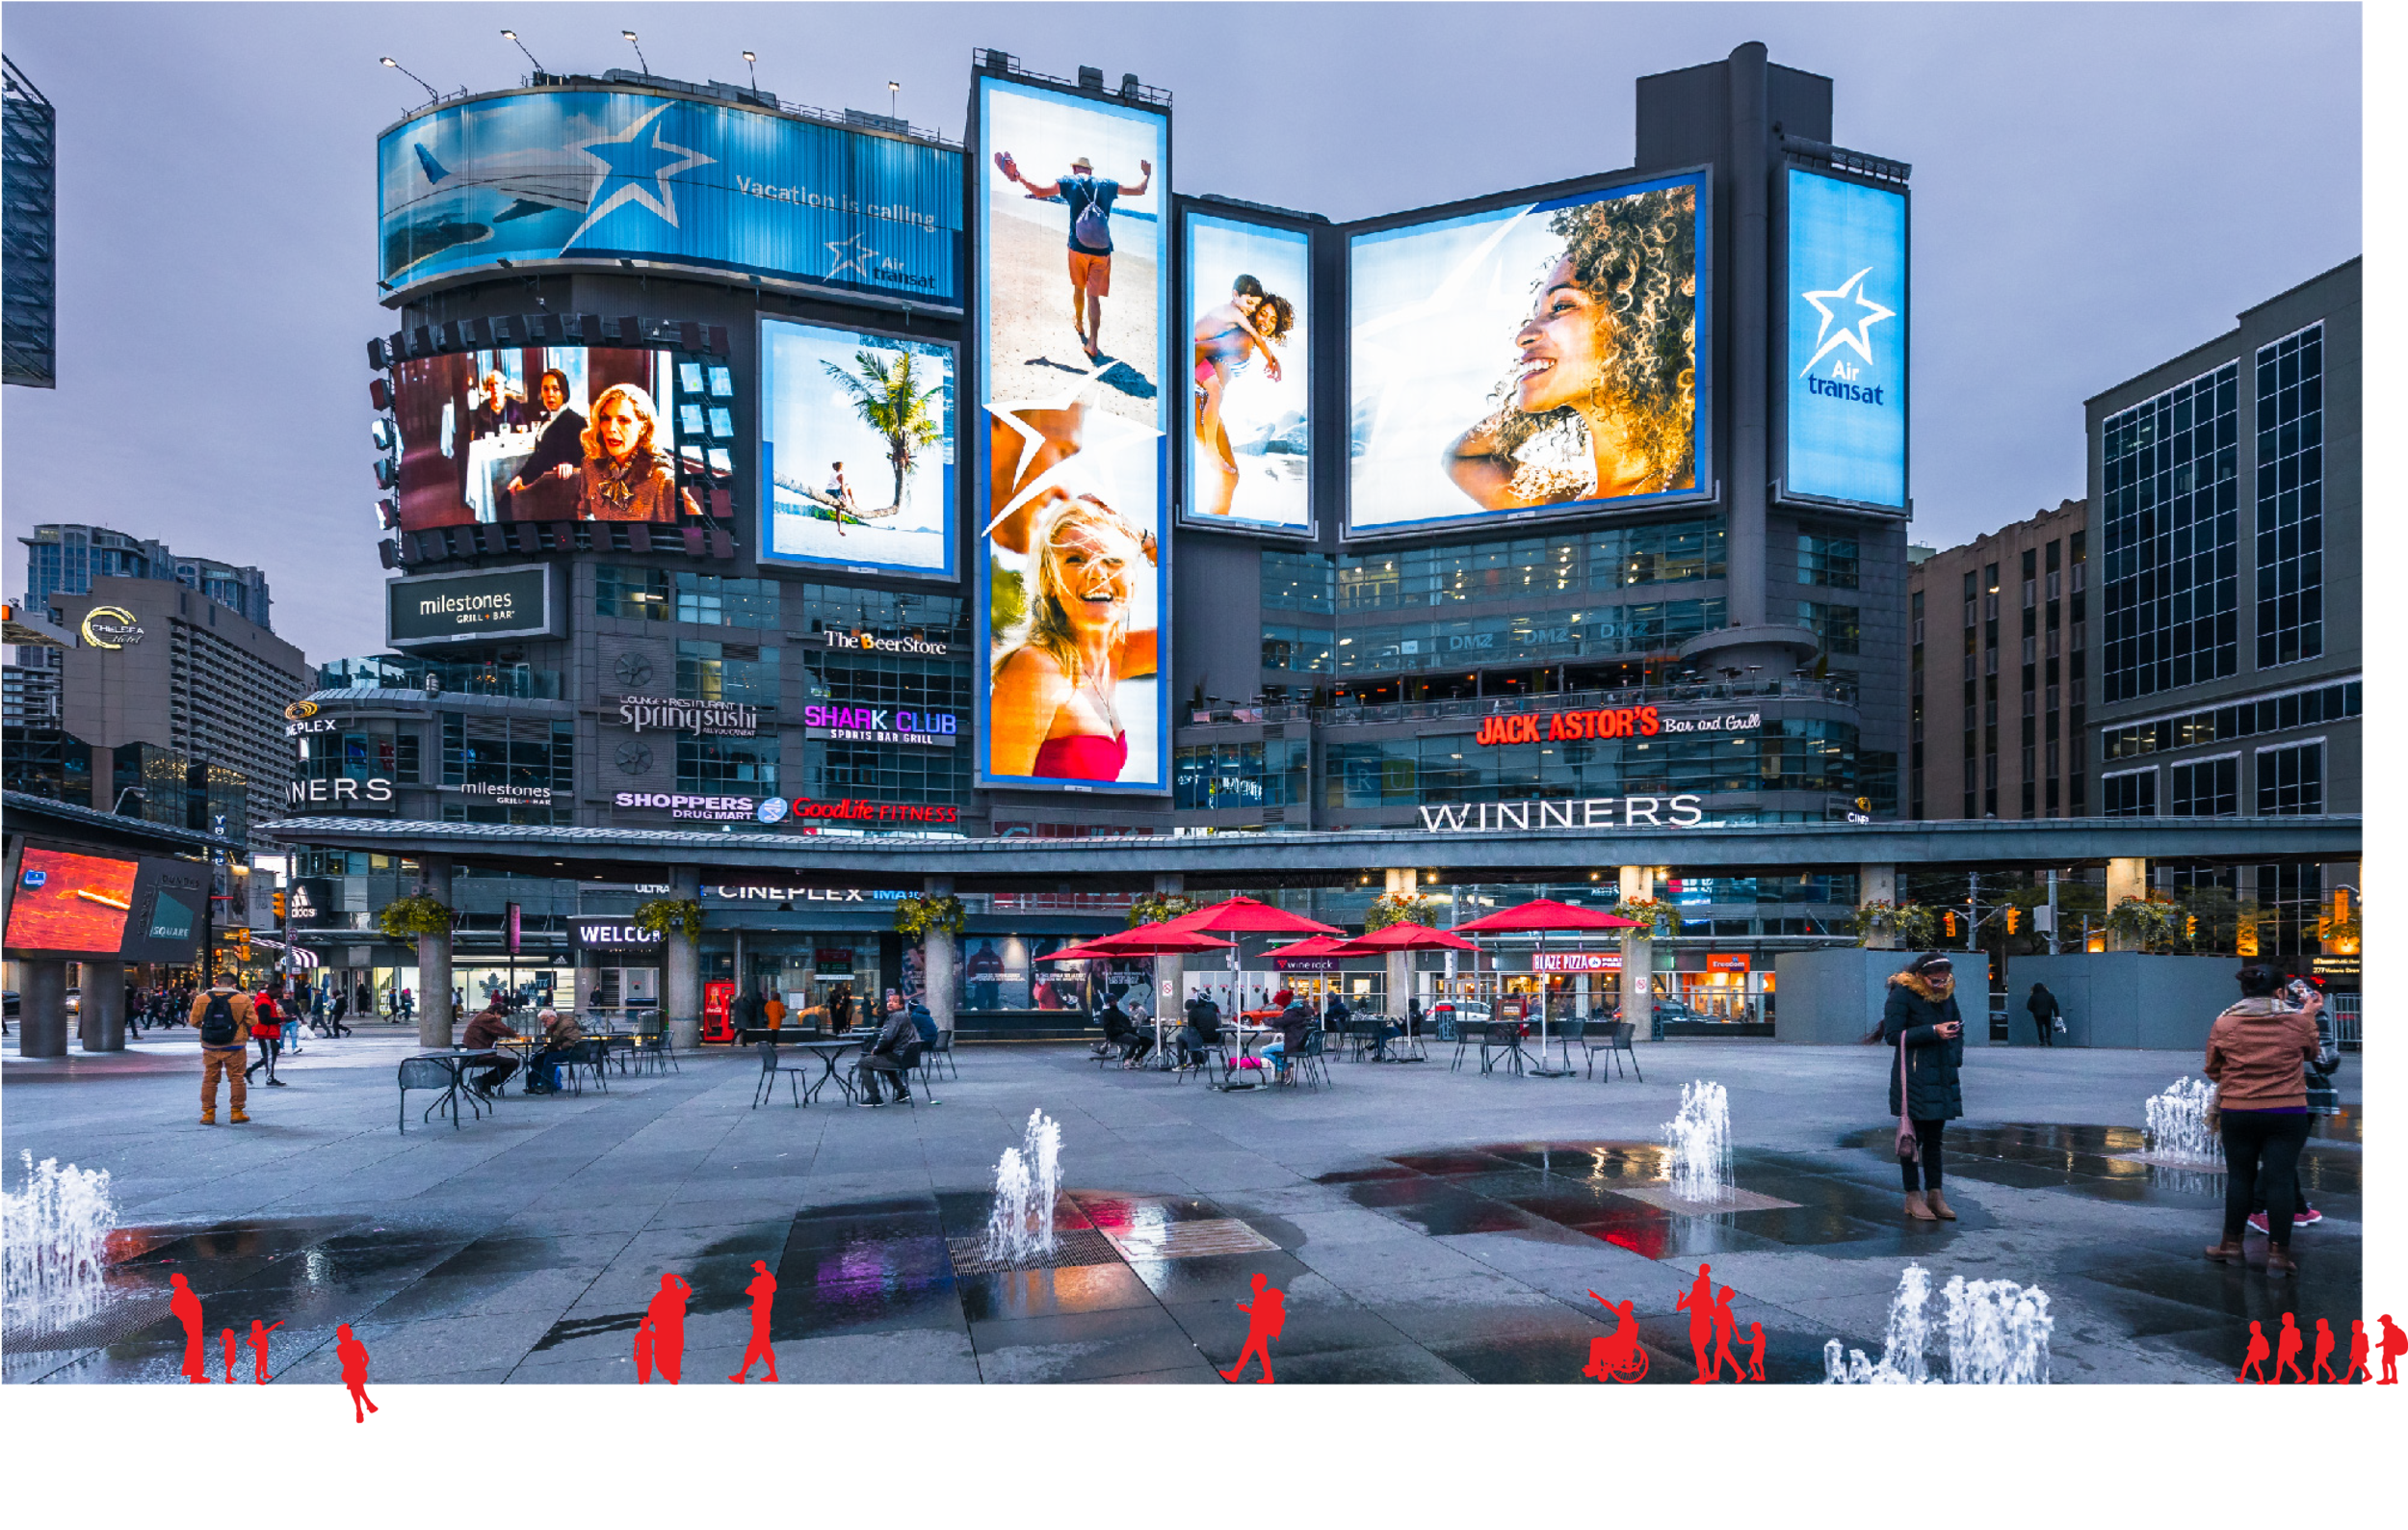 Home is where the heart is! Little Canada is excited to announce our location at 10 Dundas East! - Opening in 2020!